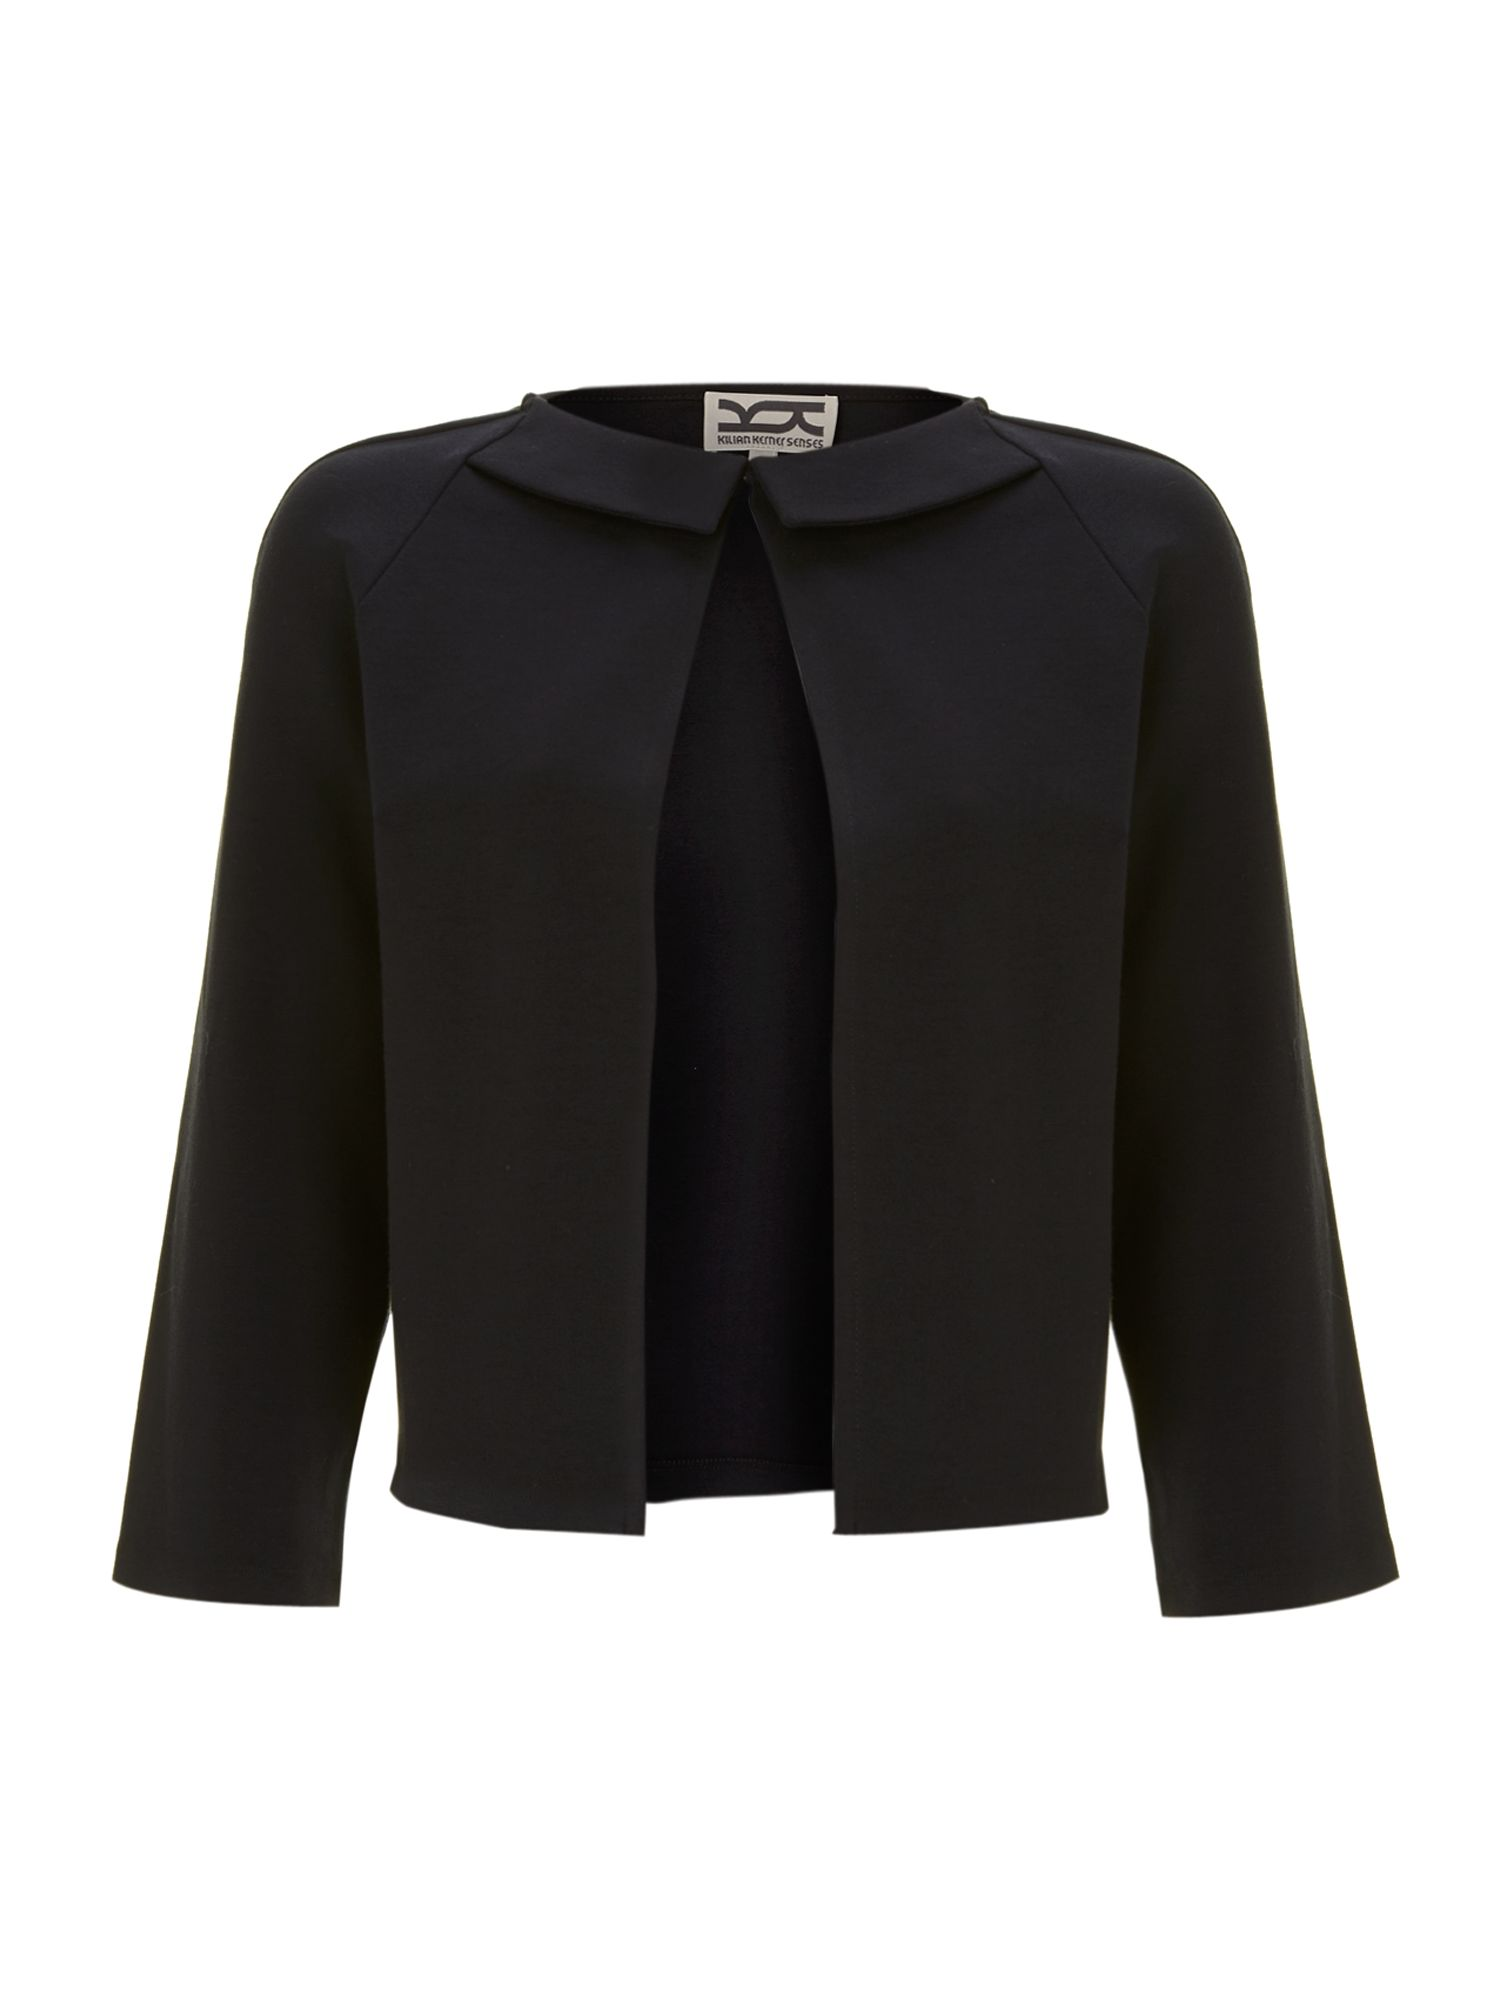 AJ cropped high neck jacket